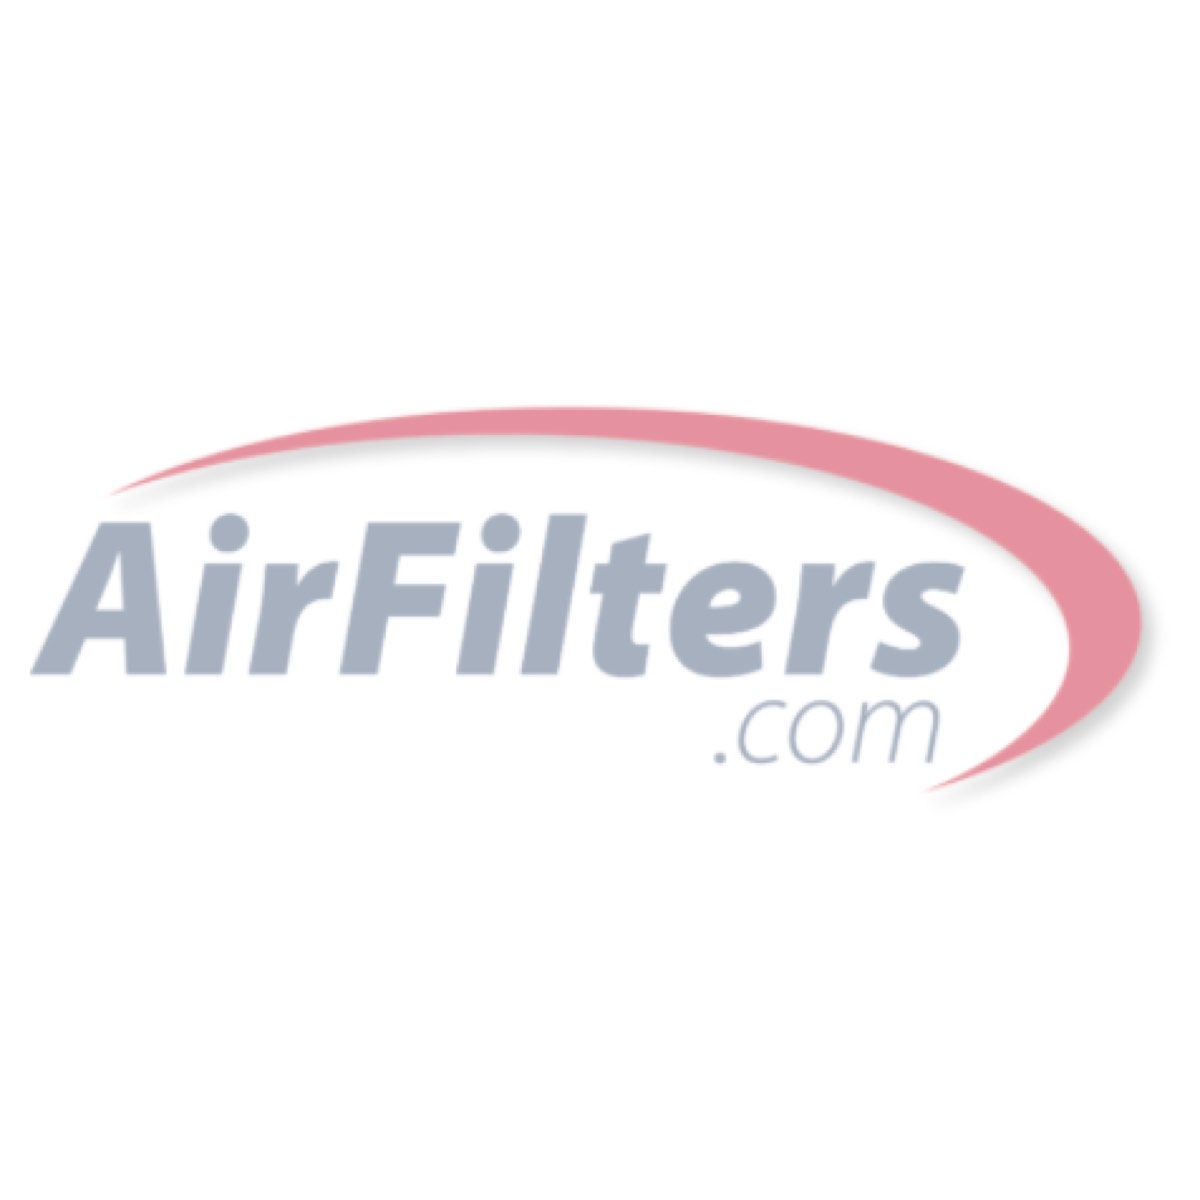 Electro-Air 16x25x5 Furnace Filters